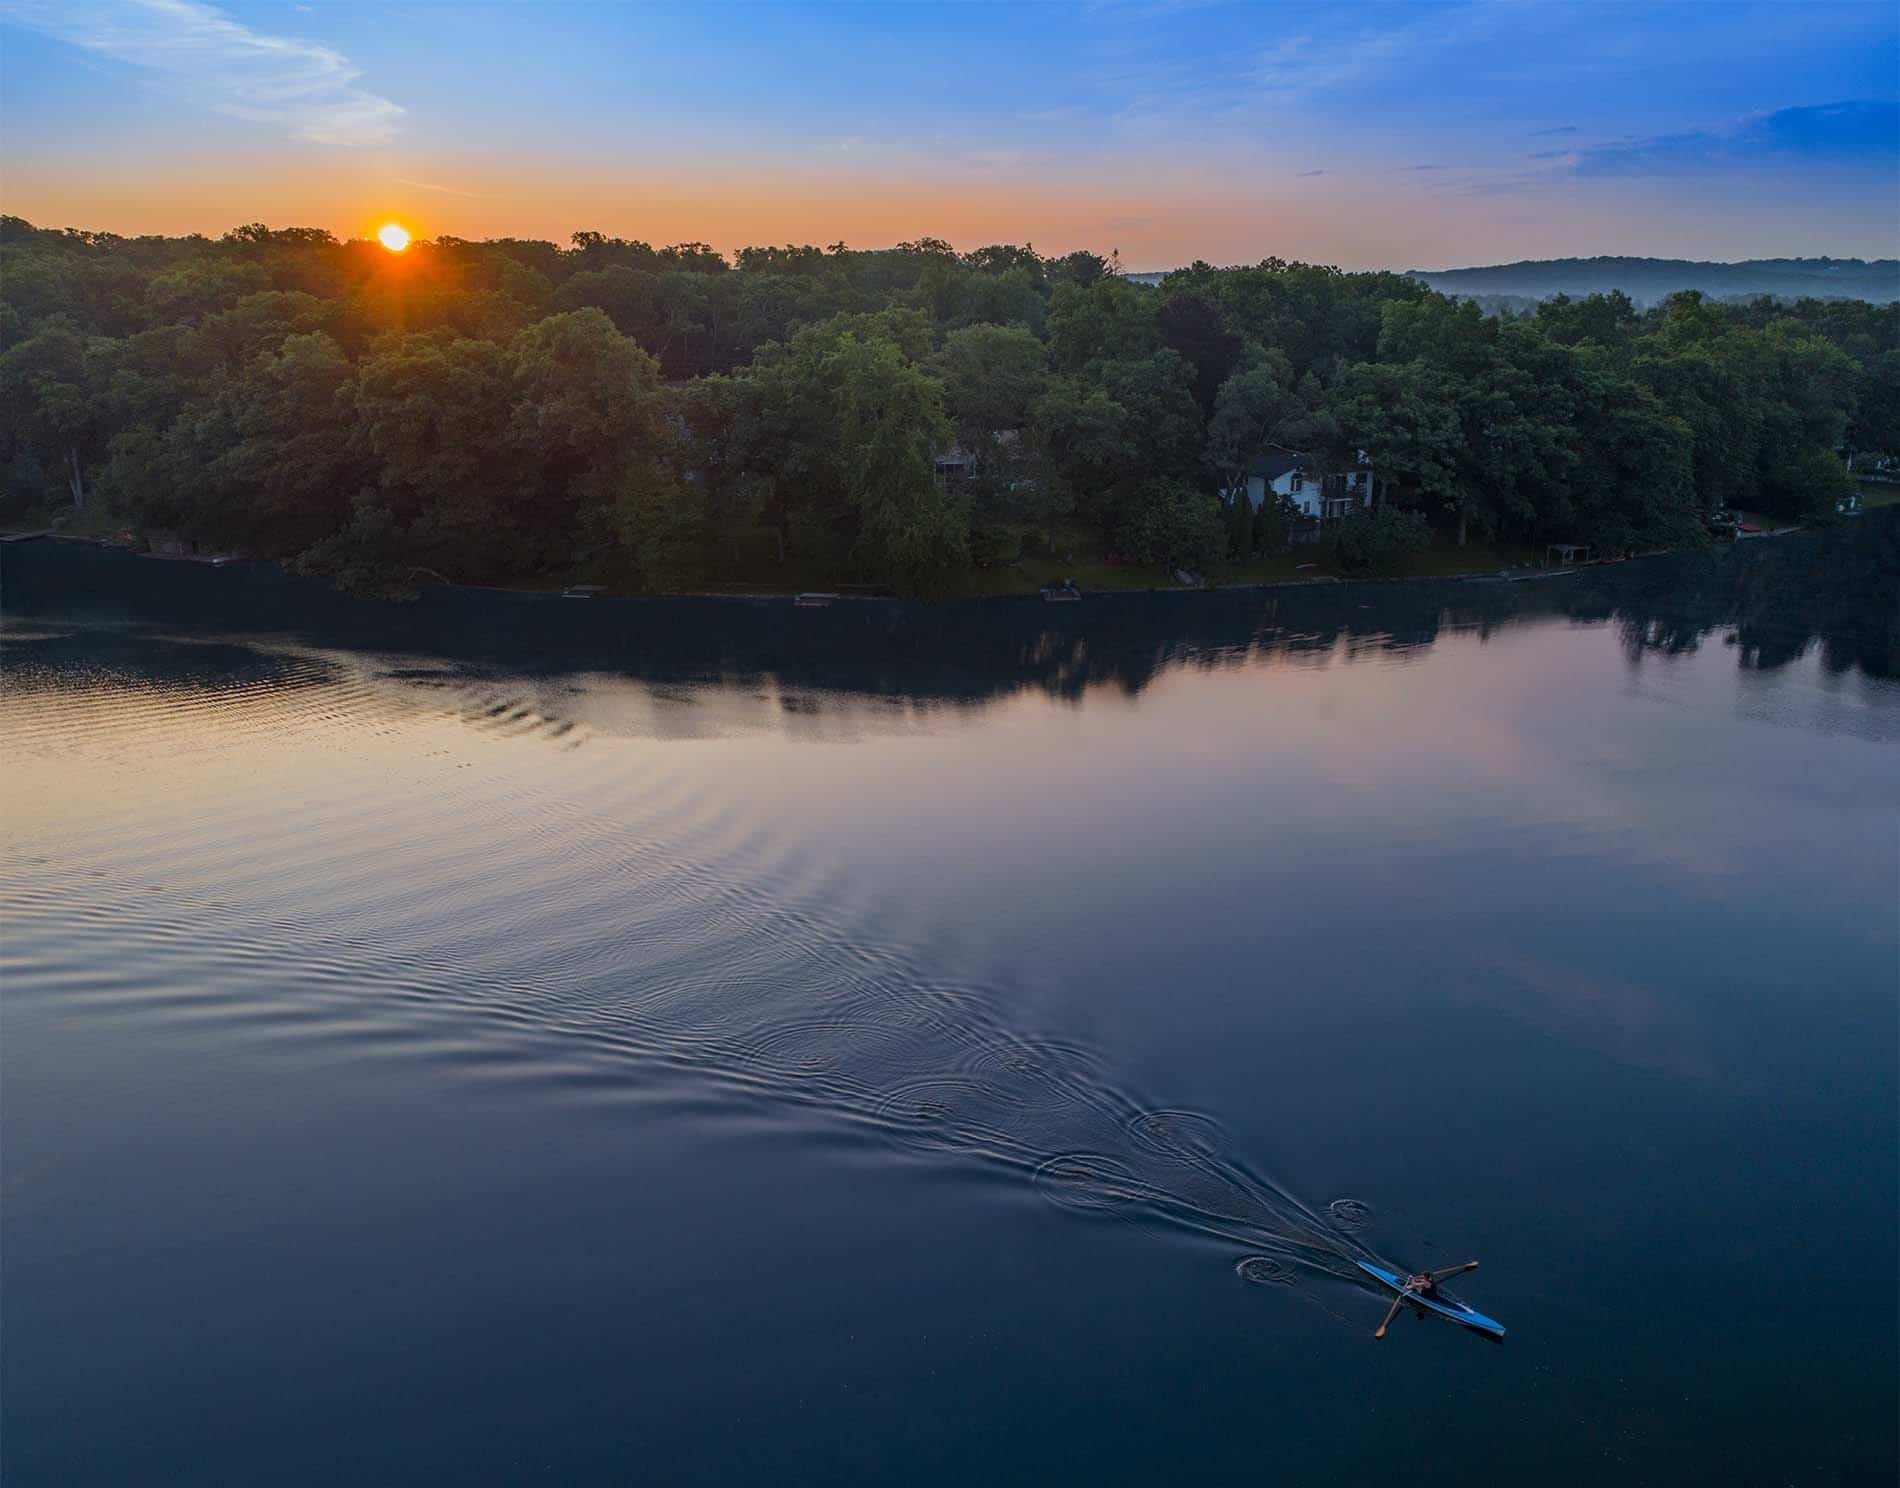 Drone Photograph of man rowing in a rowing scull at sunrise on Cedar Lake New Jersey